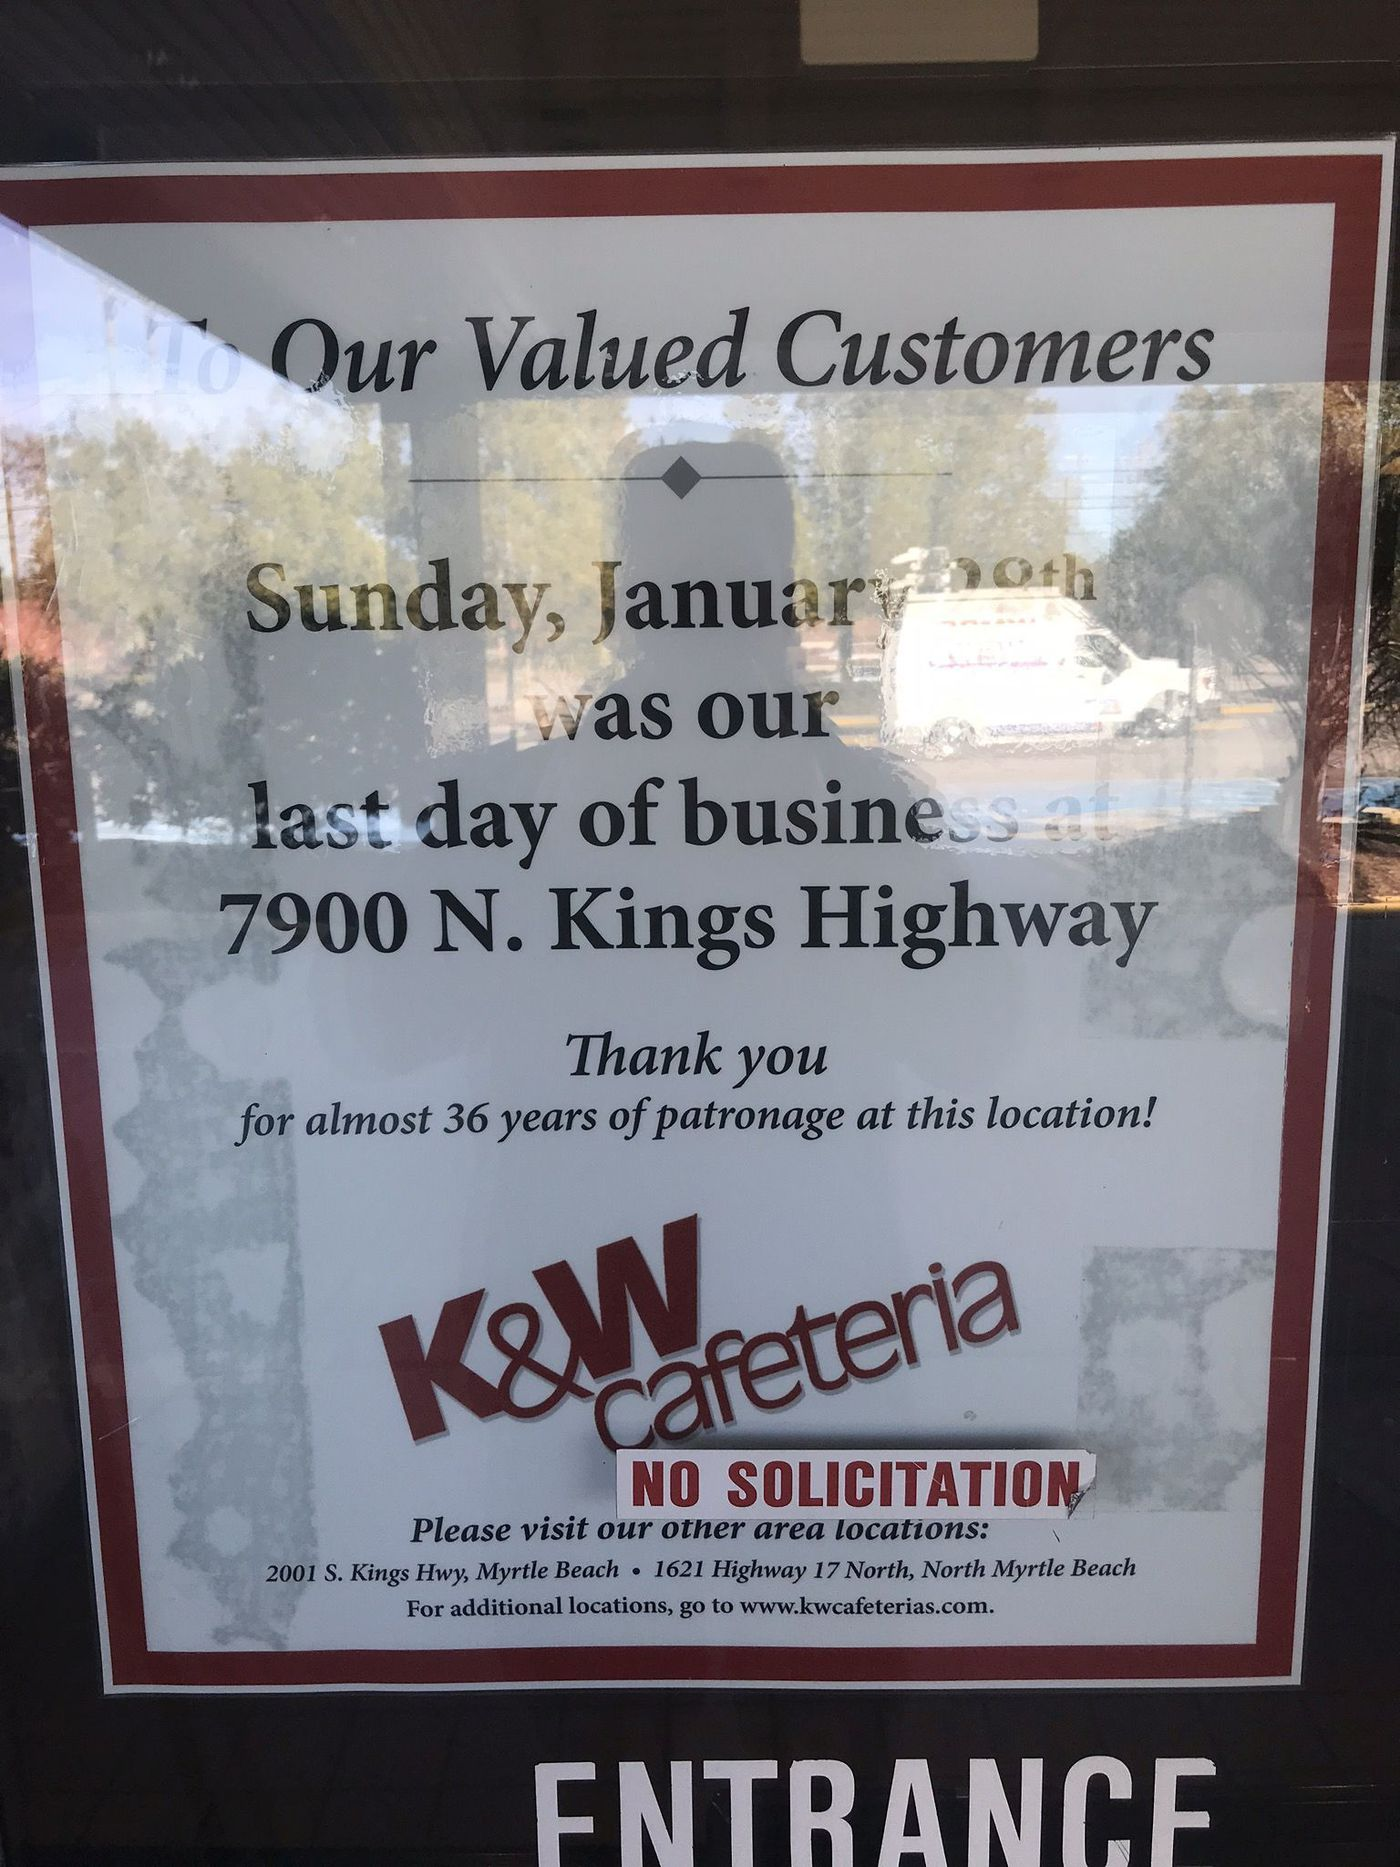 K W Cafeteria At 79th Ave North Closes After Nearly 36 Years In